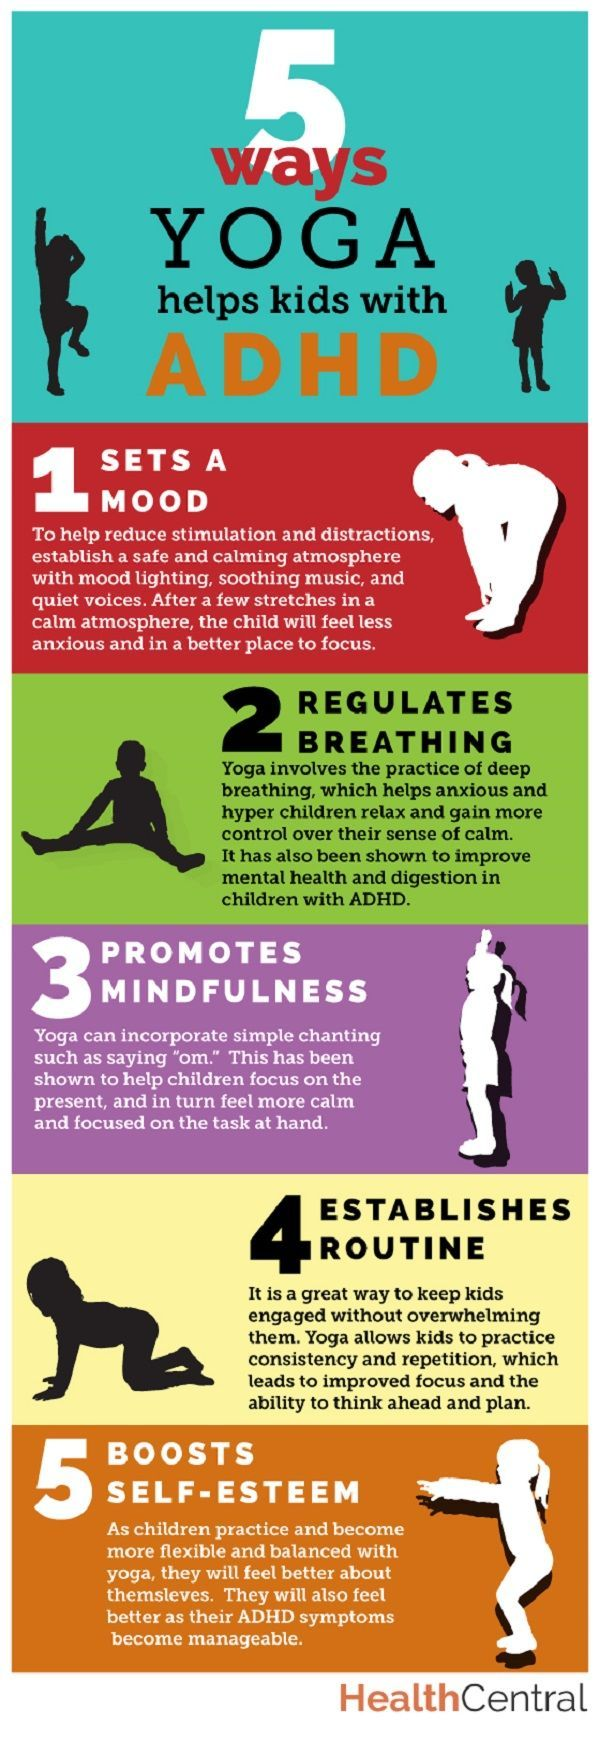 5 ways #yoga is good for kids with #ADHD http://www.healthcentral.com/adhd/c/458275/179212/5-ways-yoga-helps-infographic/?ap=2012